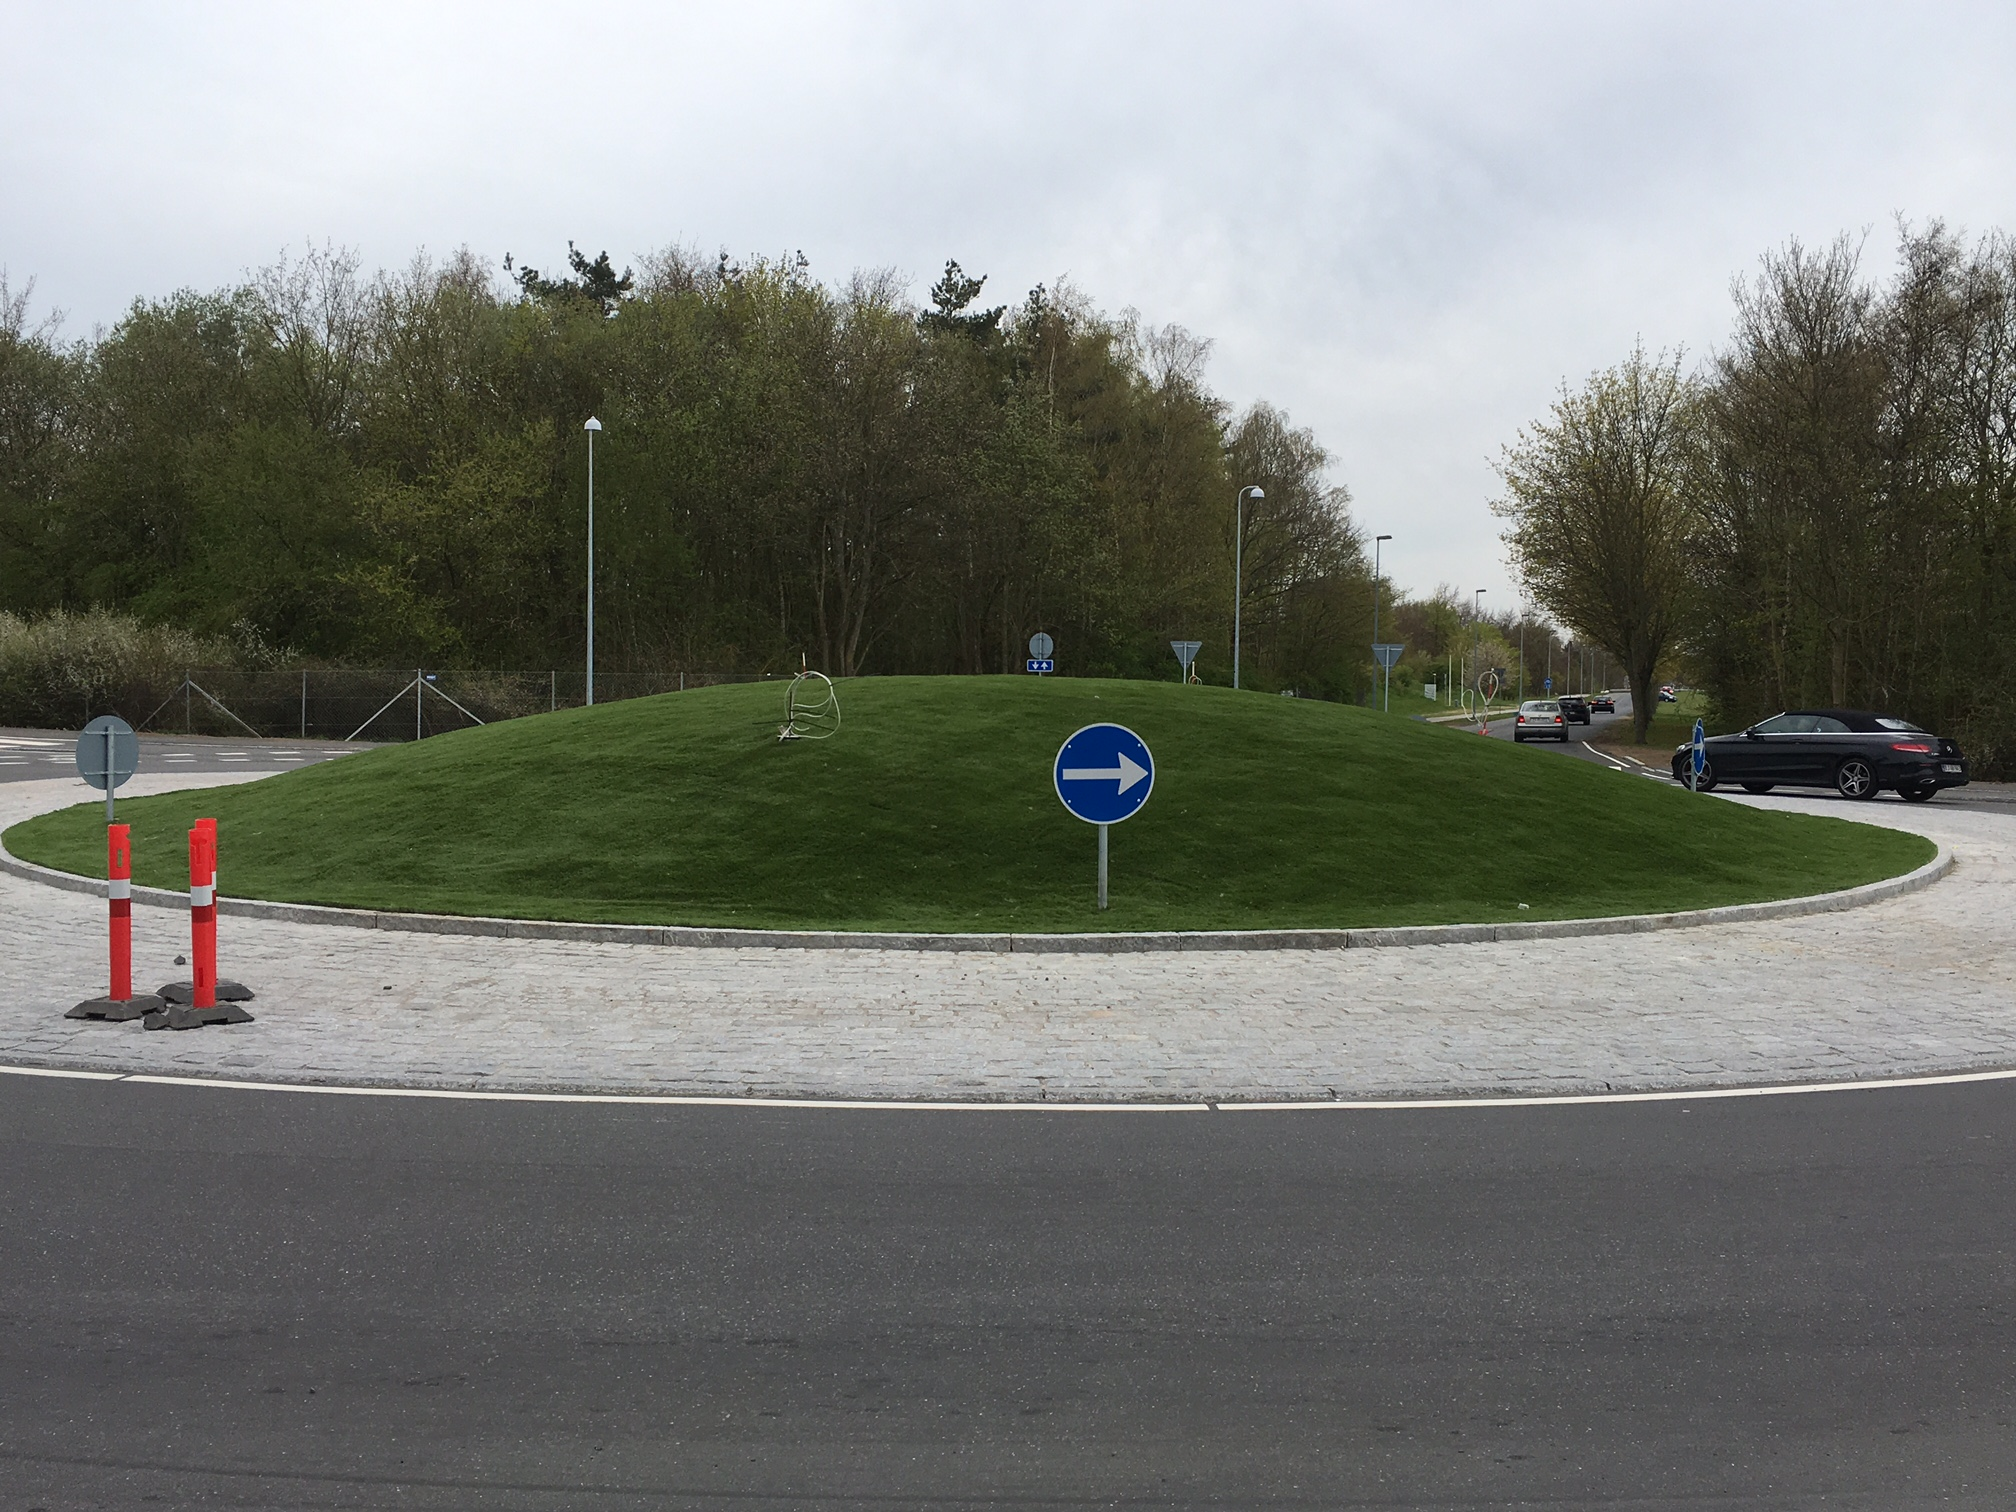 Kunstgræs School - Artifical Grass on Roundabout by Unisport